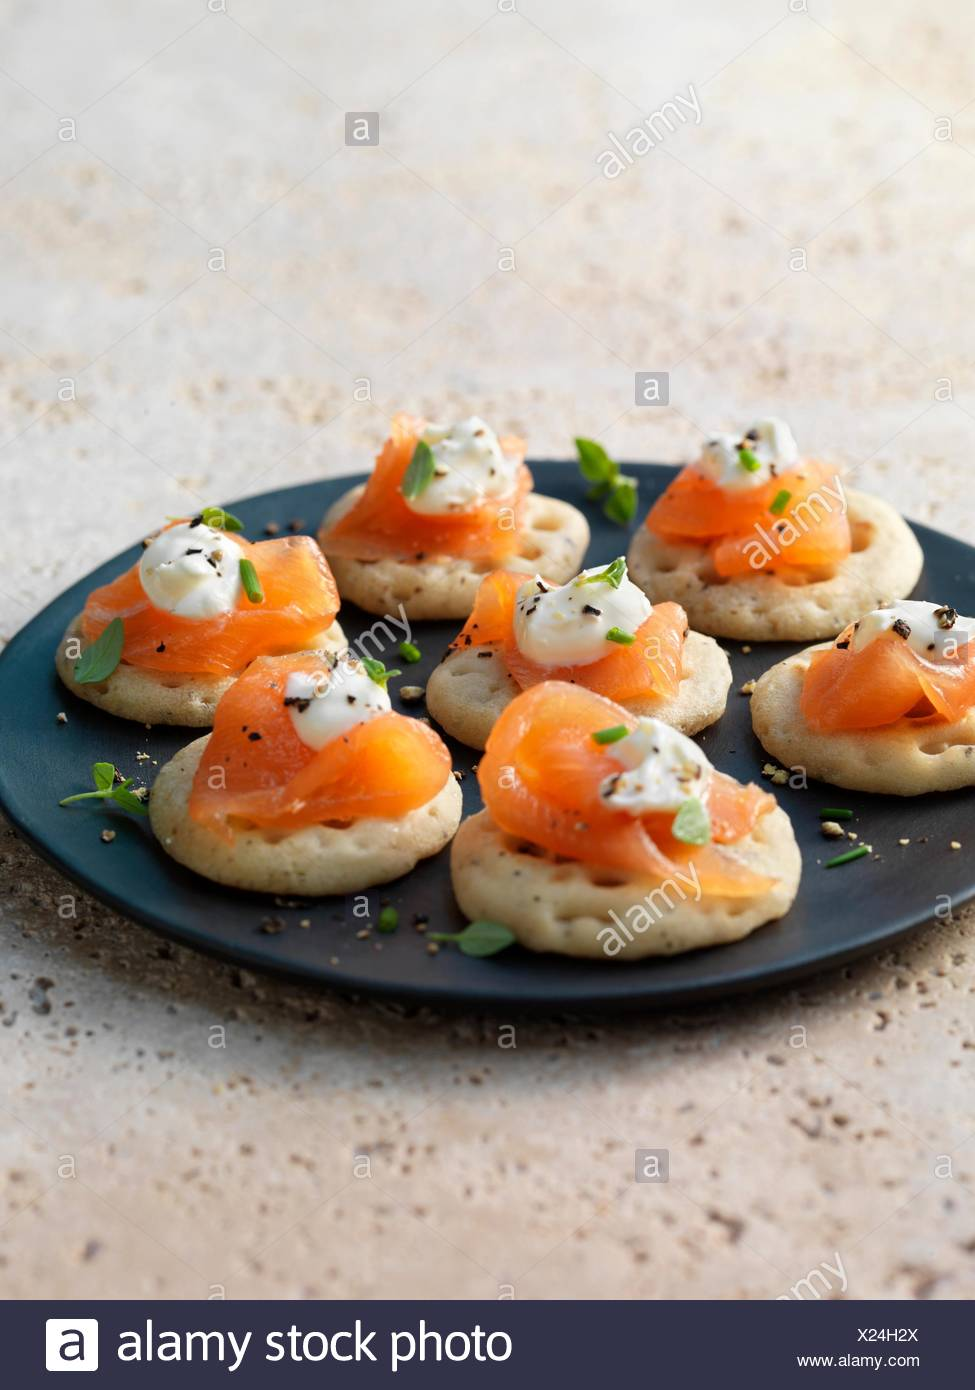 Smoked salmon and cream cheese on blinis with chive and black pepper garnish - Stock Image